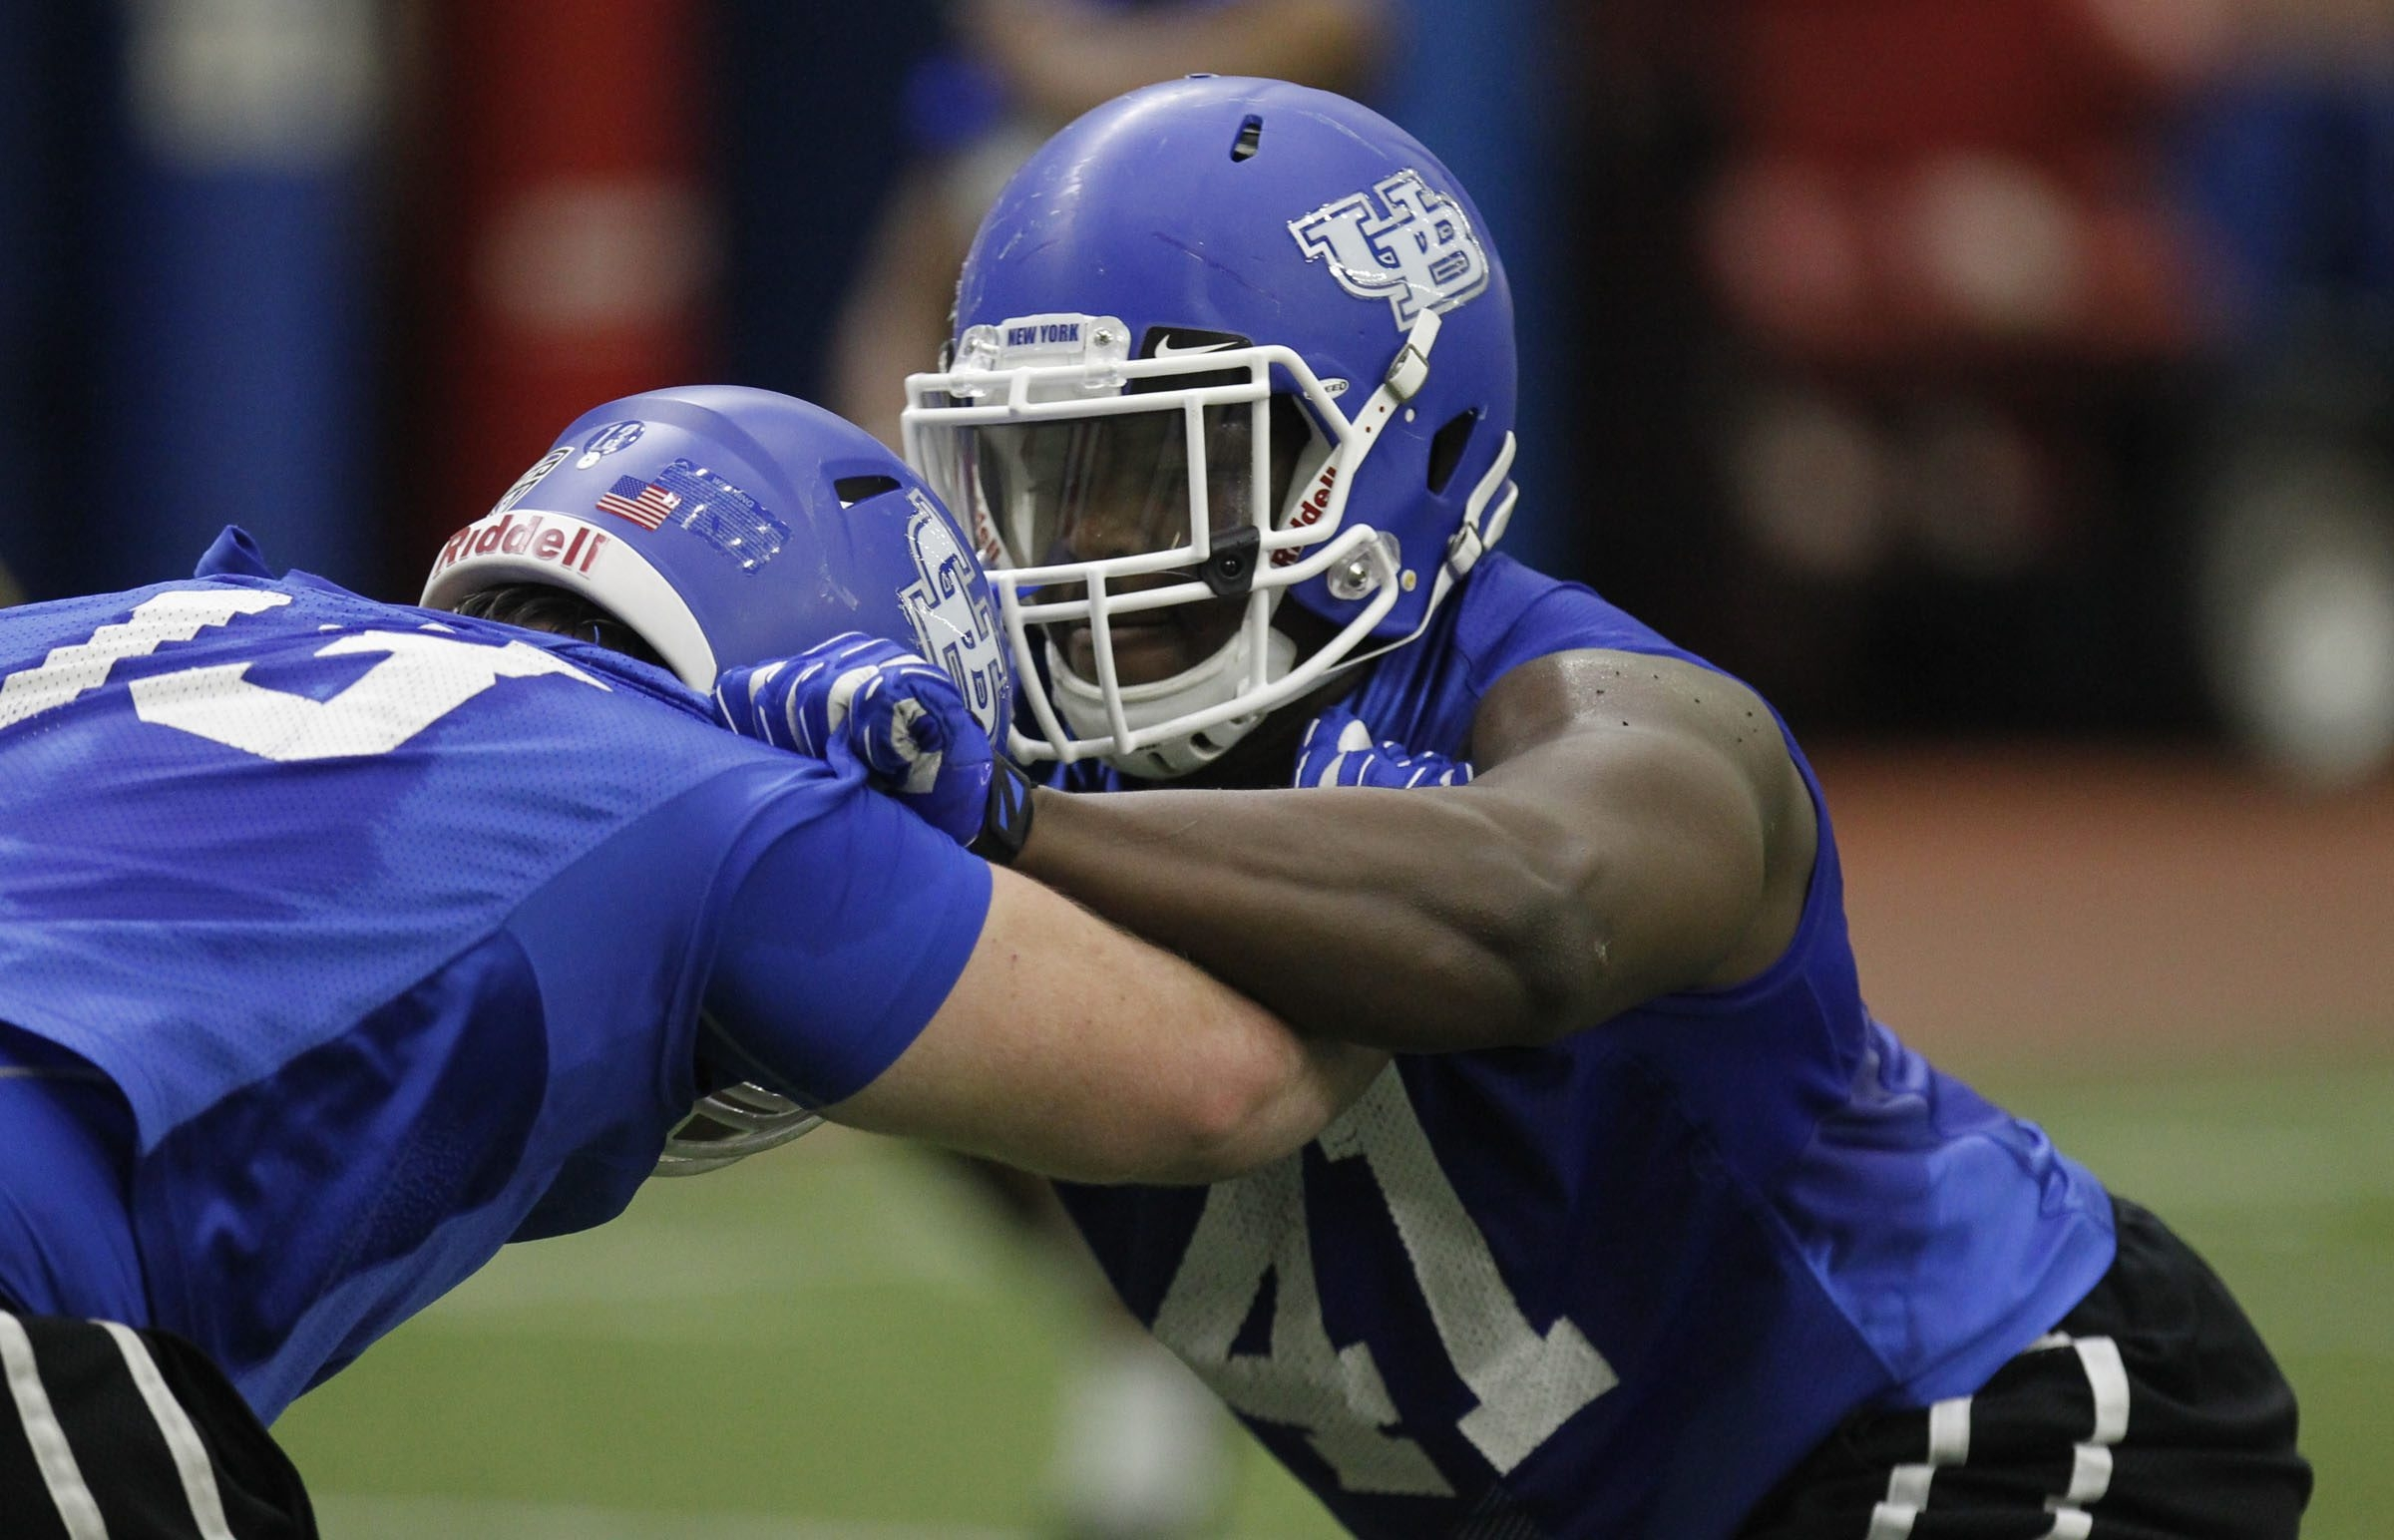 News file photo from March 2015 shows UB football player Solomon Jackson, at right, during practice.